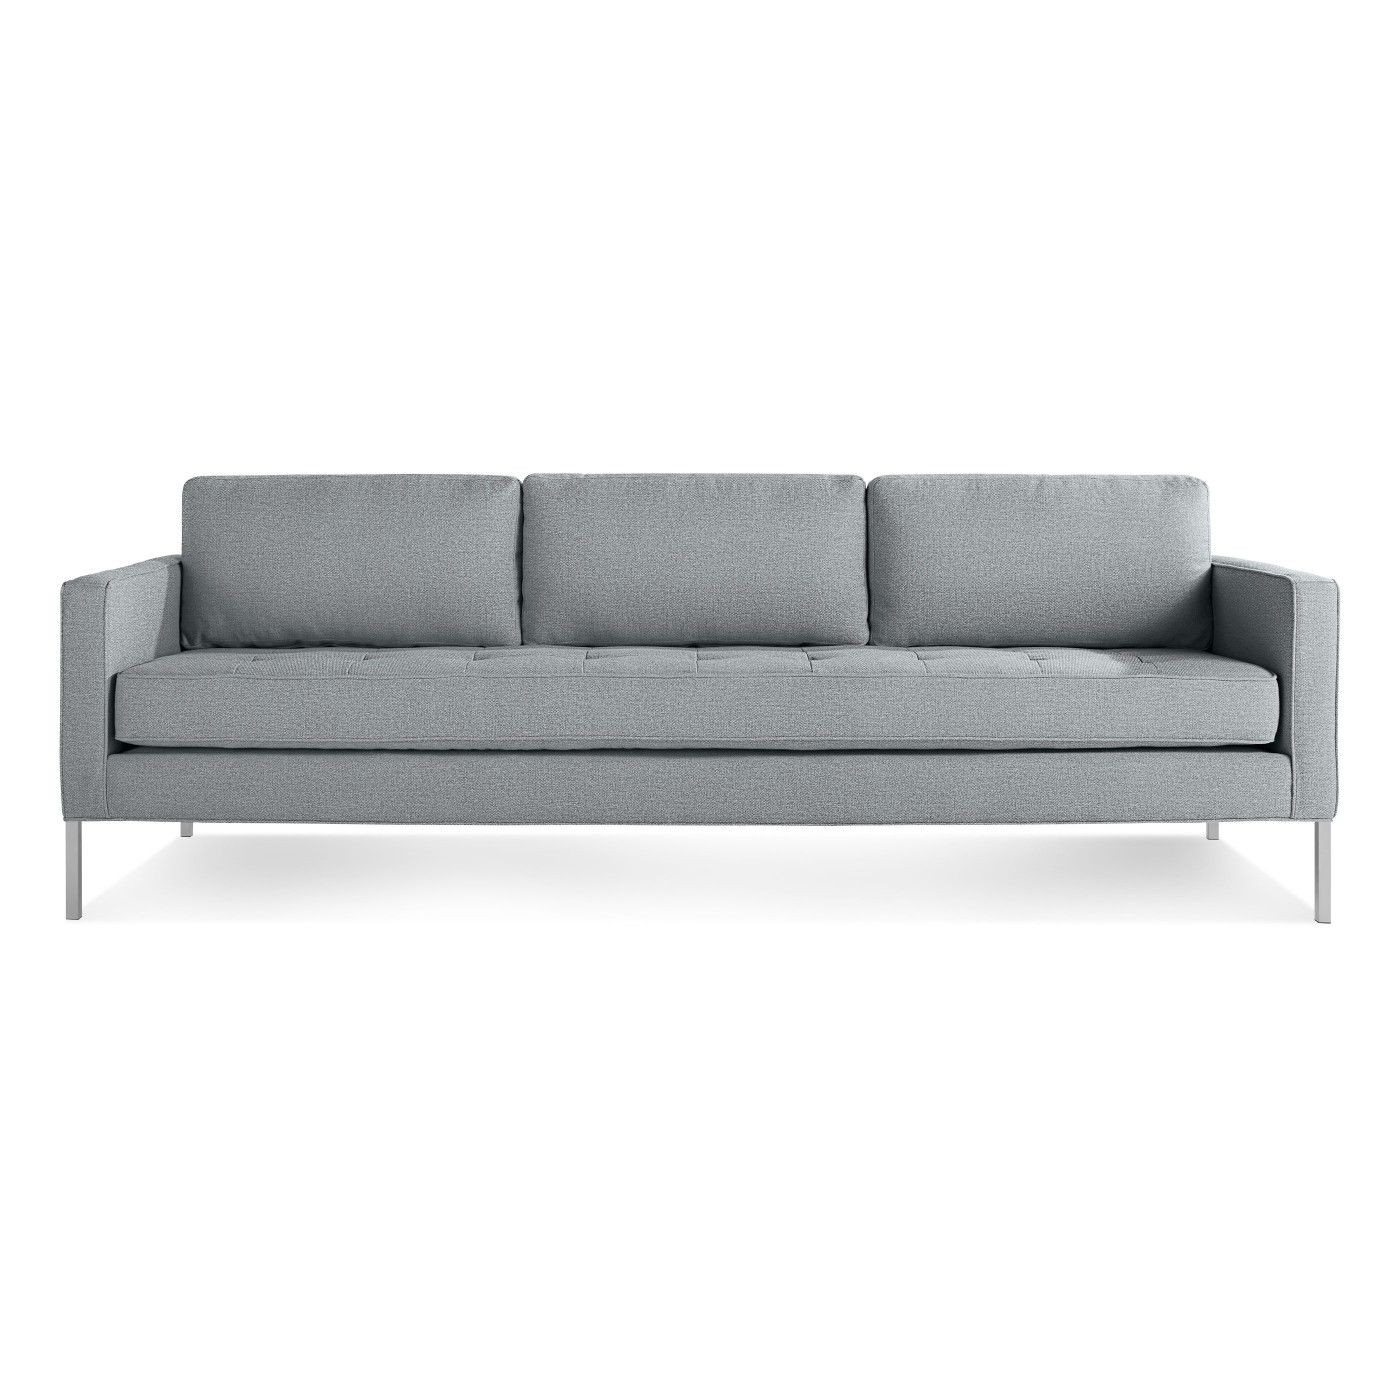 Paramount Tufted Sofa features a tufted cushion